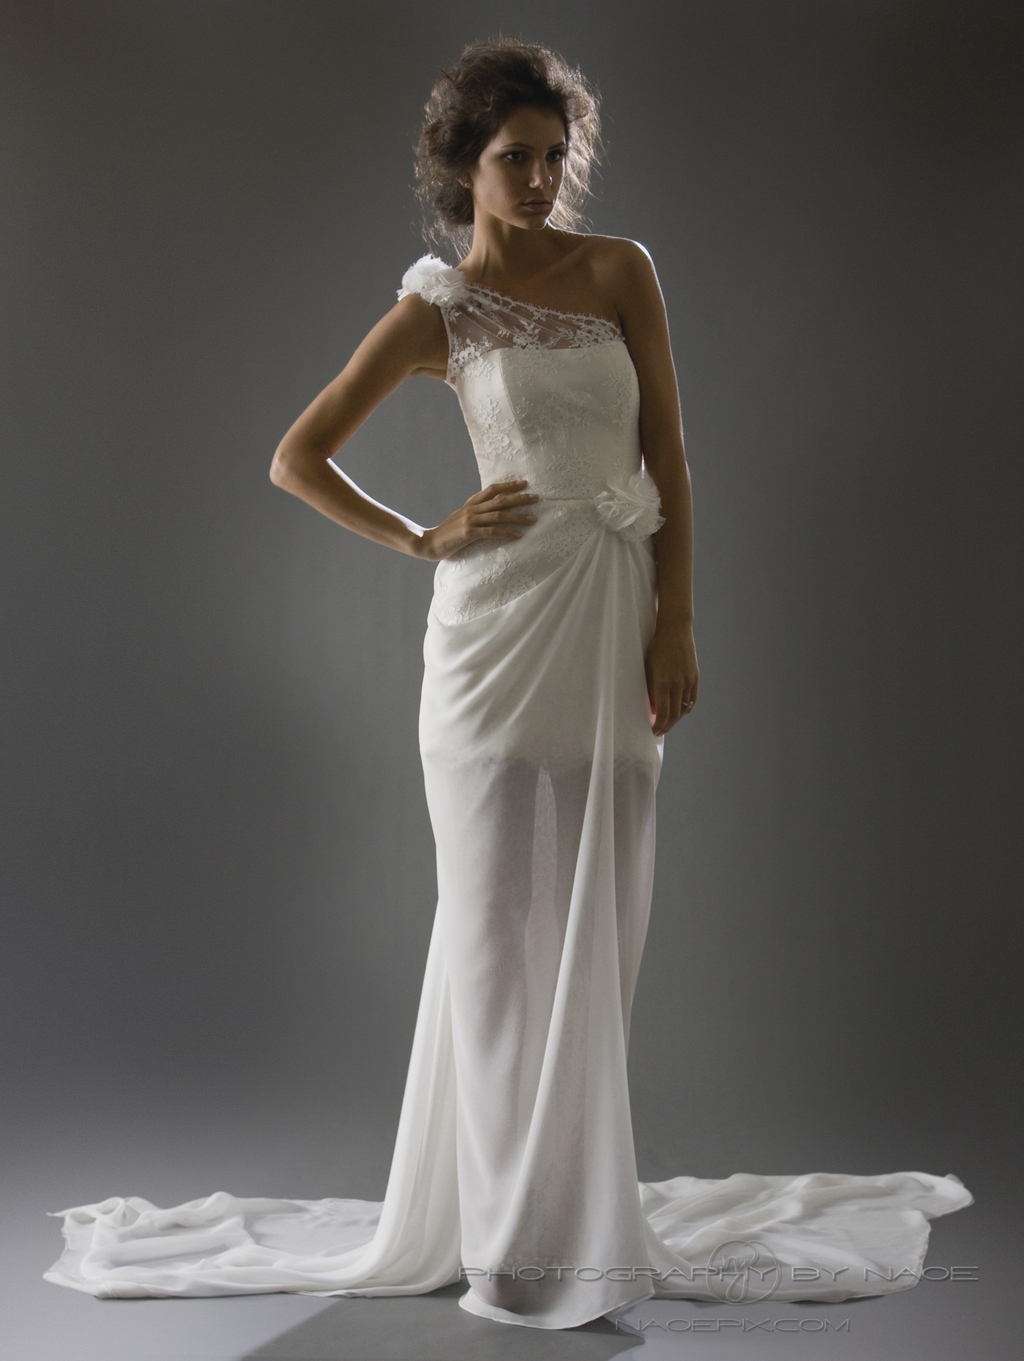 Wedding-dress-spring-2013-bridal_gown-cocoe-voci-9-front.full